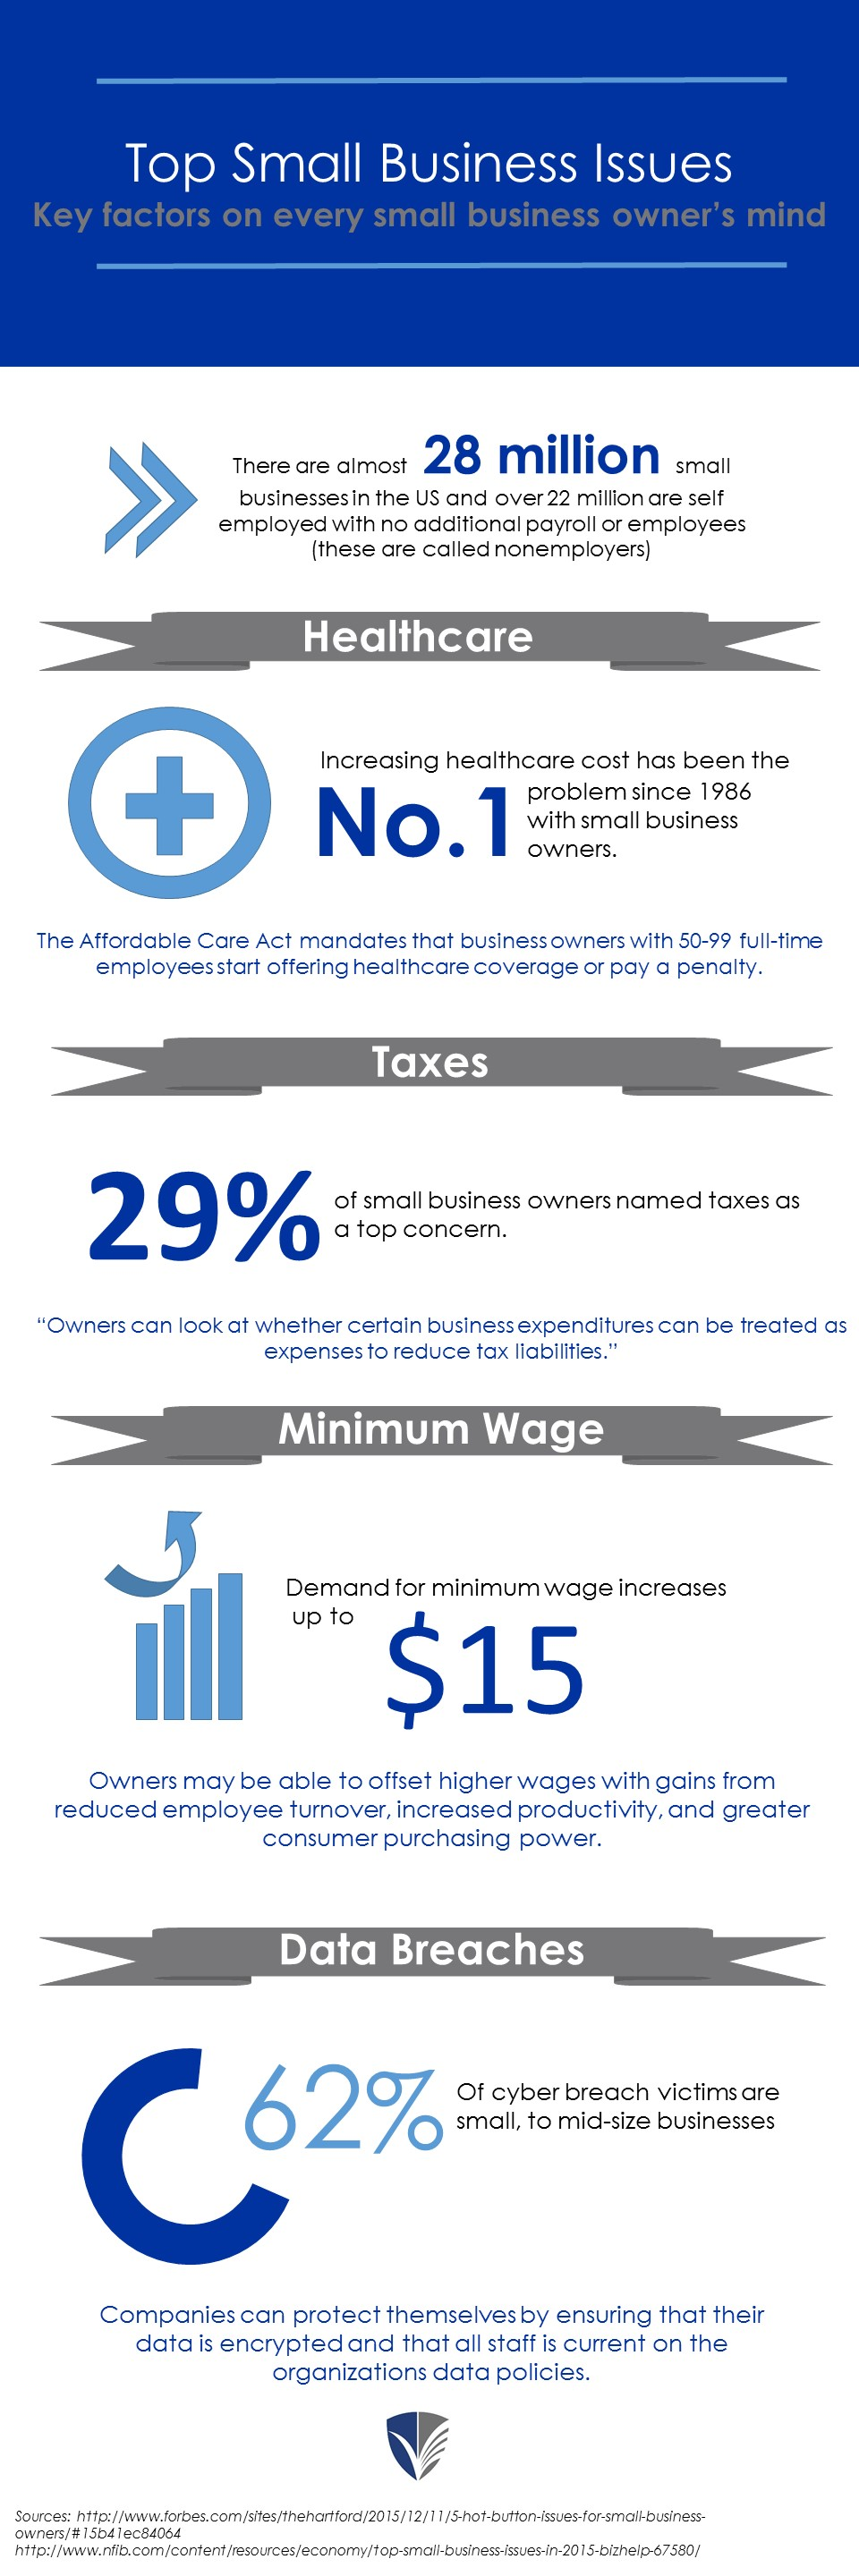 Small-Business-Issues-1.jpg